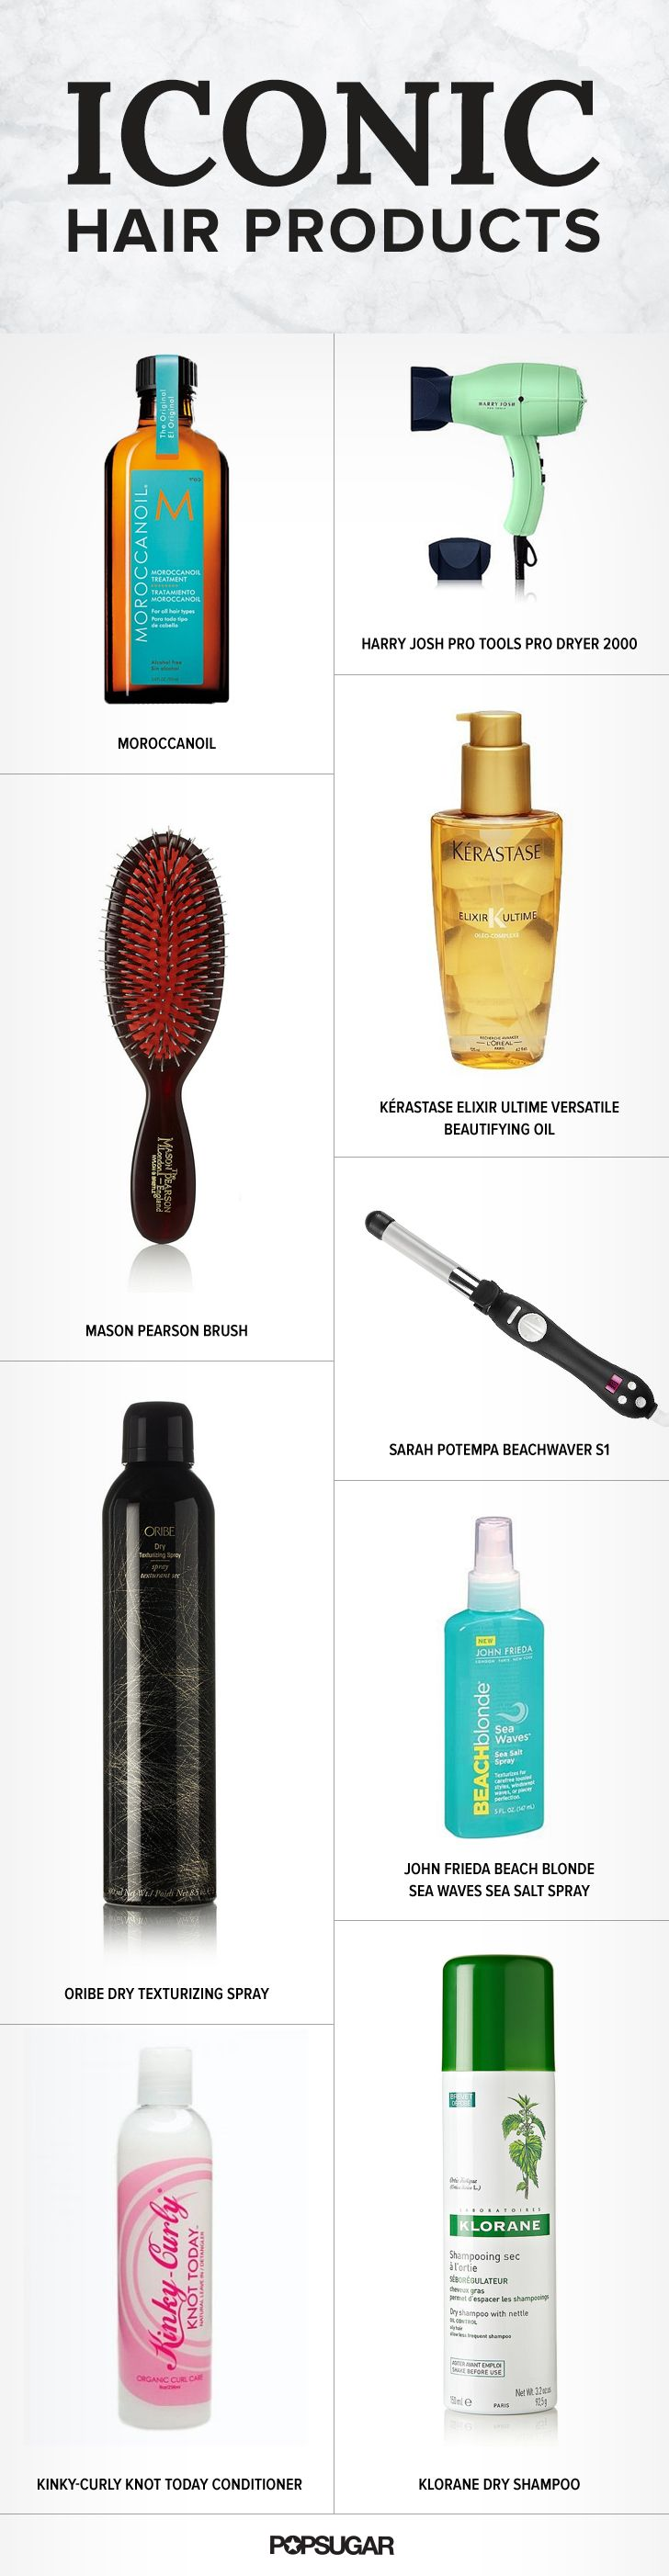 If you're obsessed with your hair, you need to try these iconic hair products.